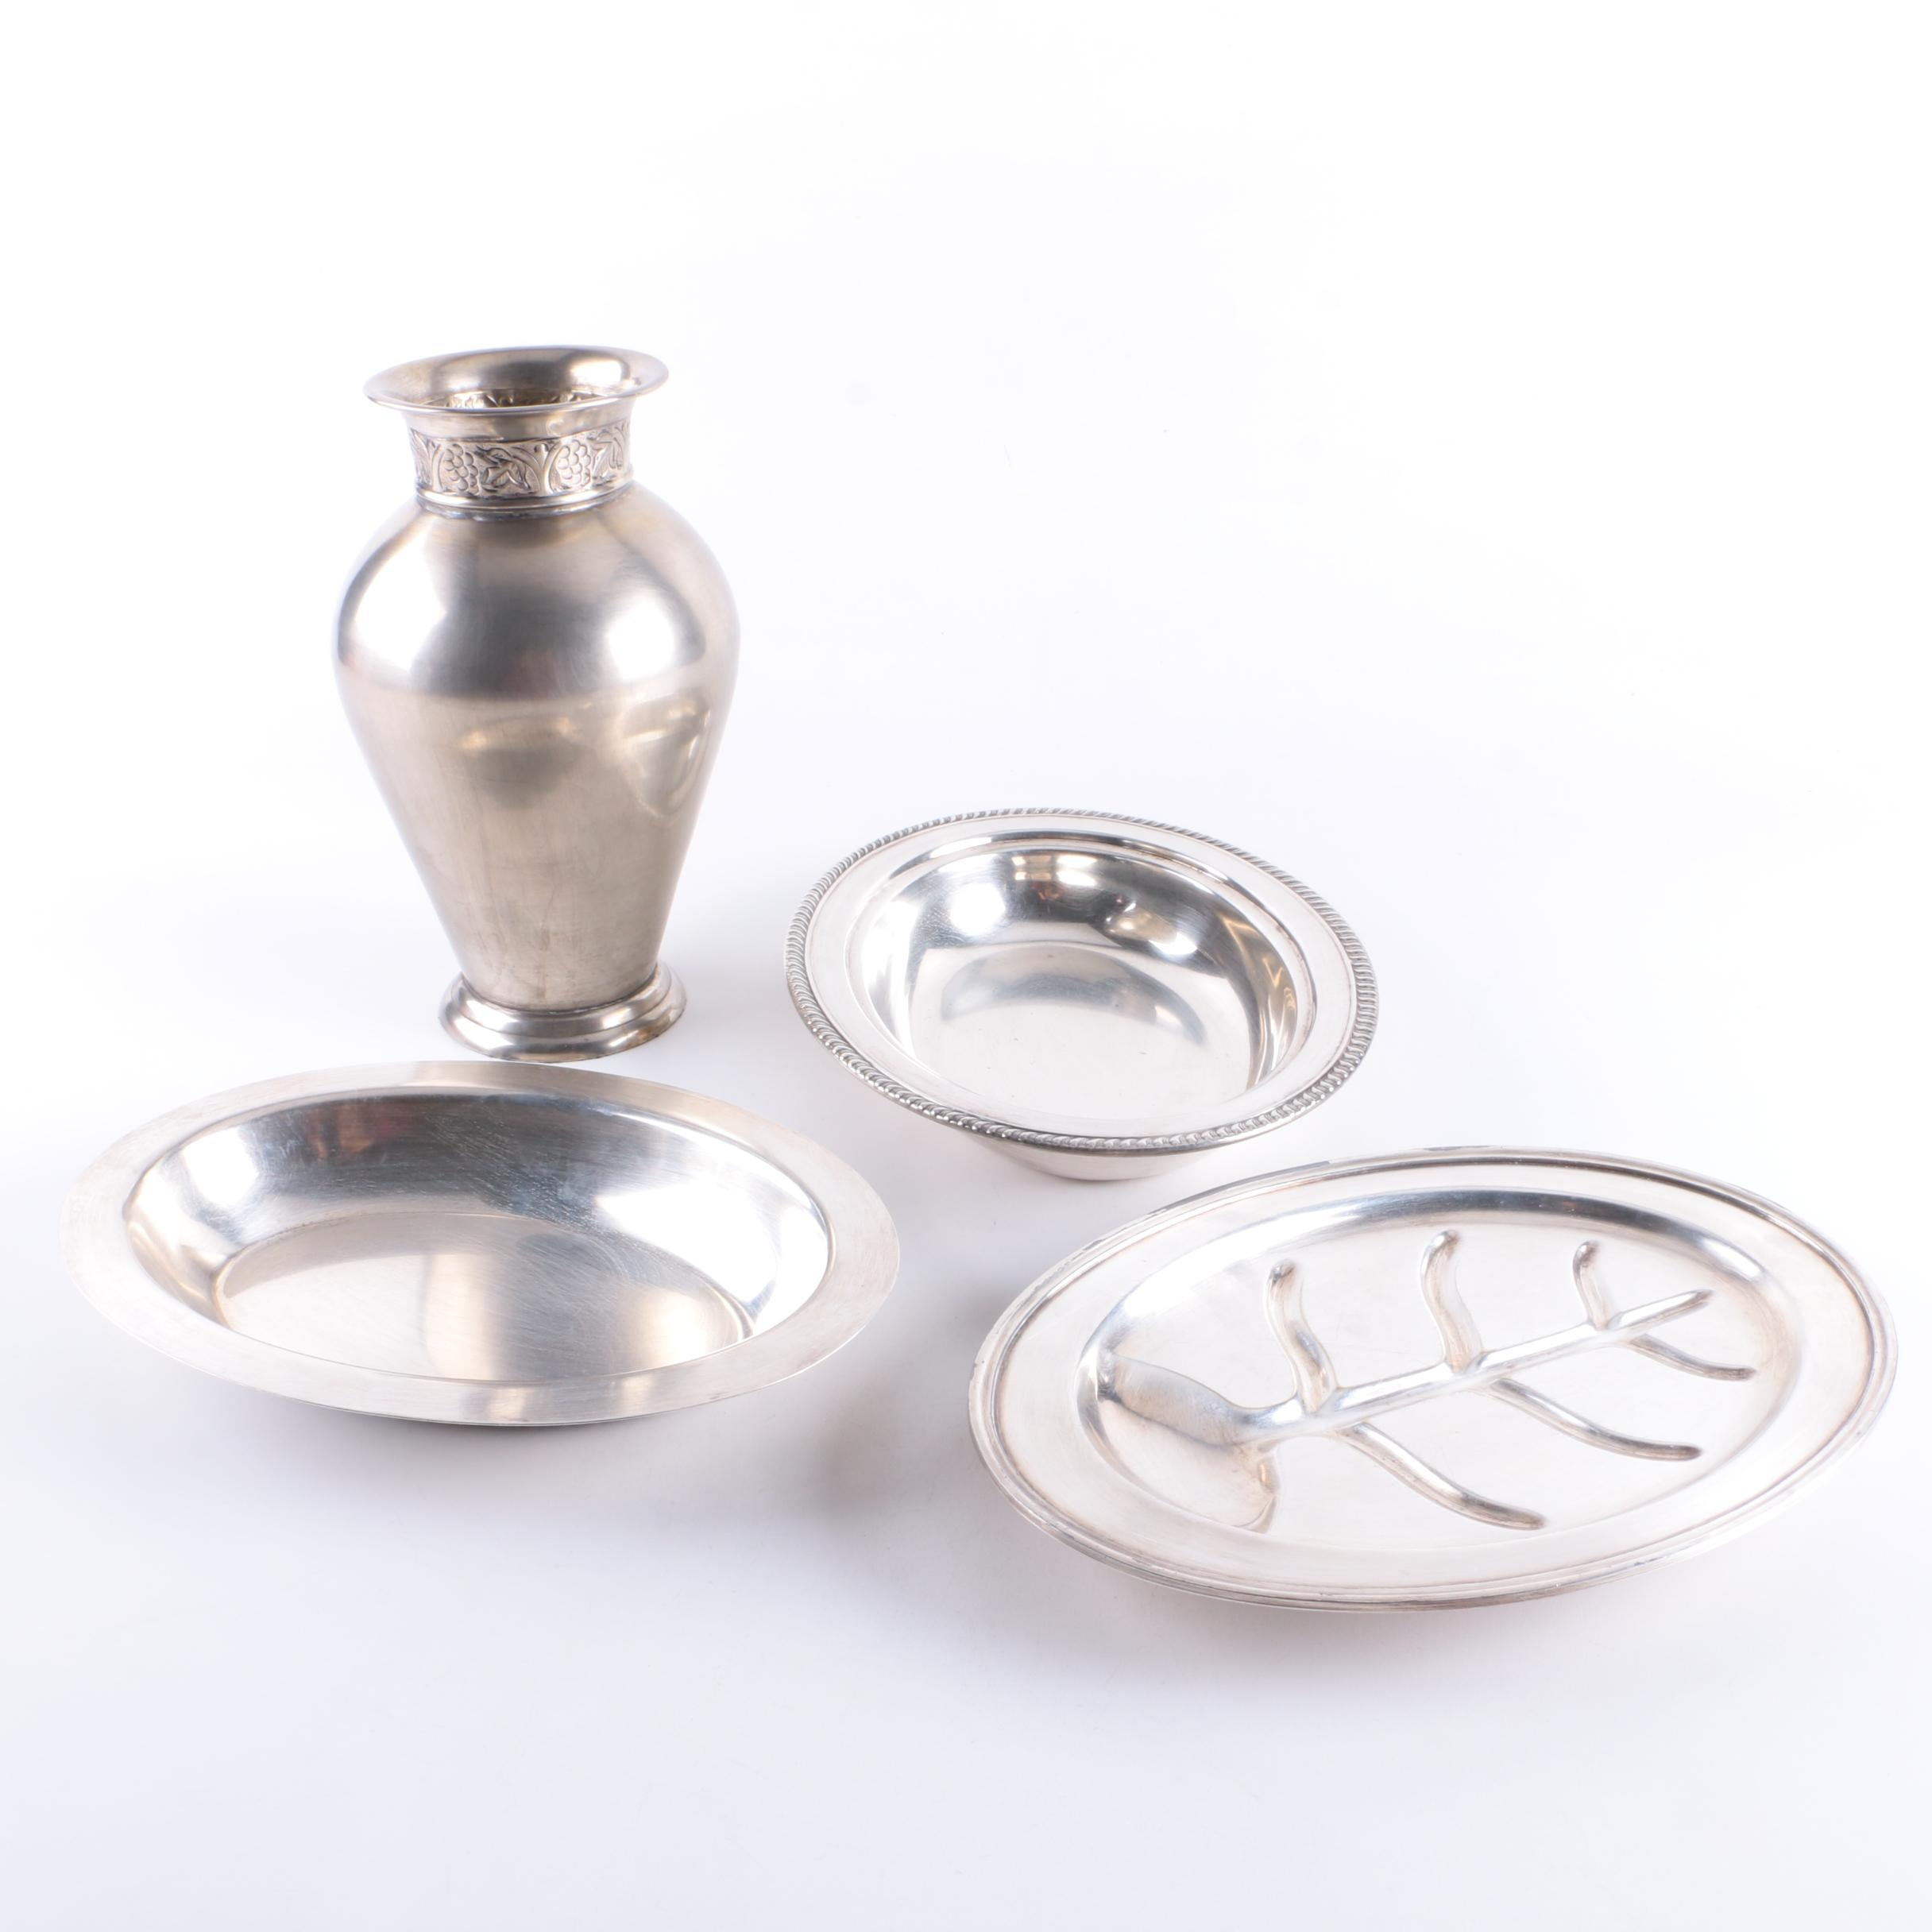 Silver Plate Serveware and Decor Featuring F.B. Rogers and Poole